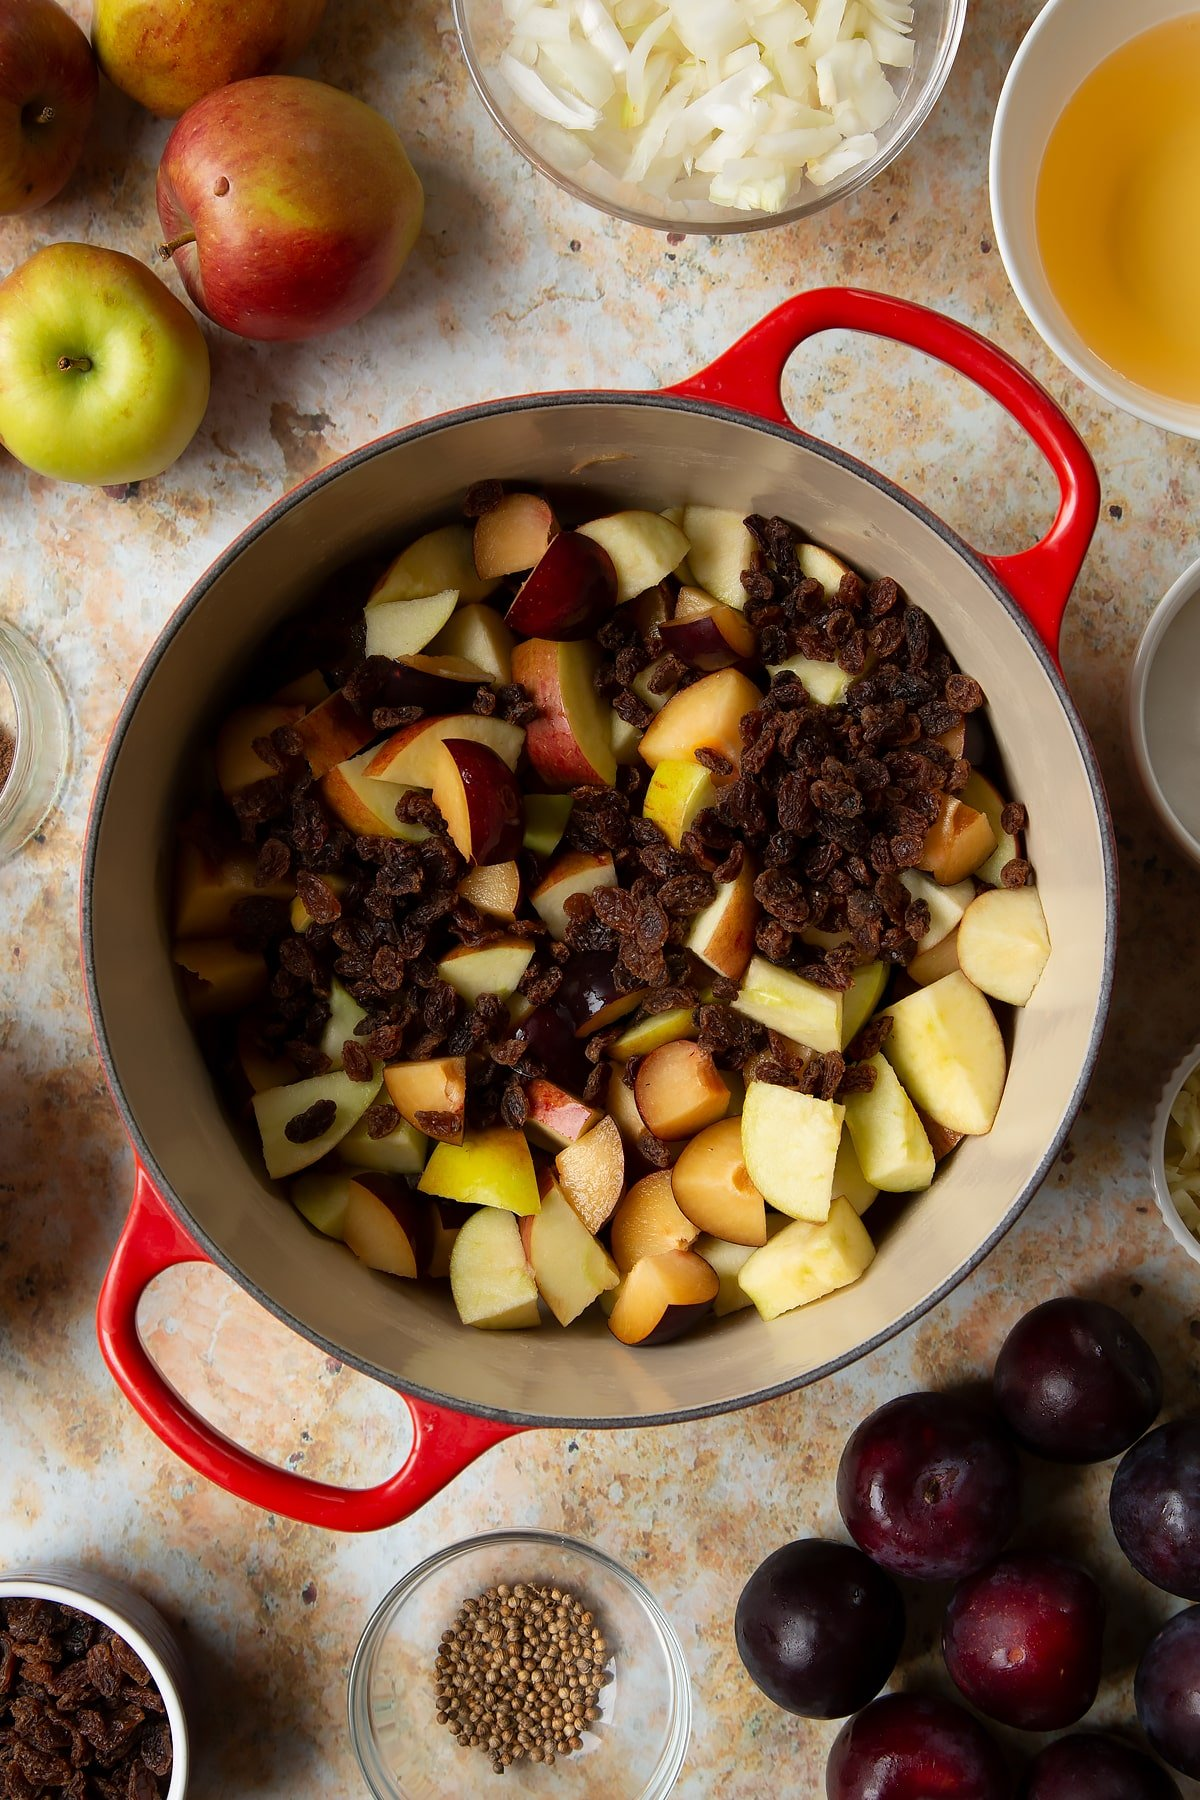 Chopped plums, apples and raisins in a large pan. Ingredients to make a fruit chutney recipe surround the pan.